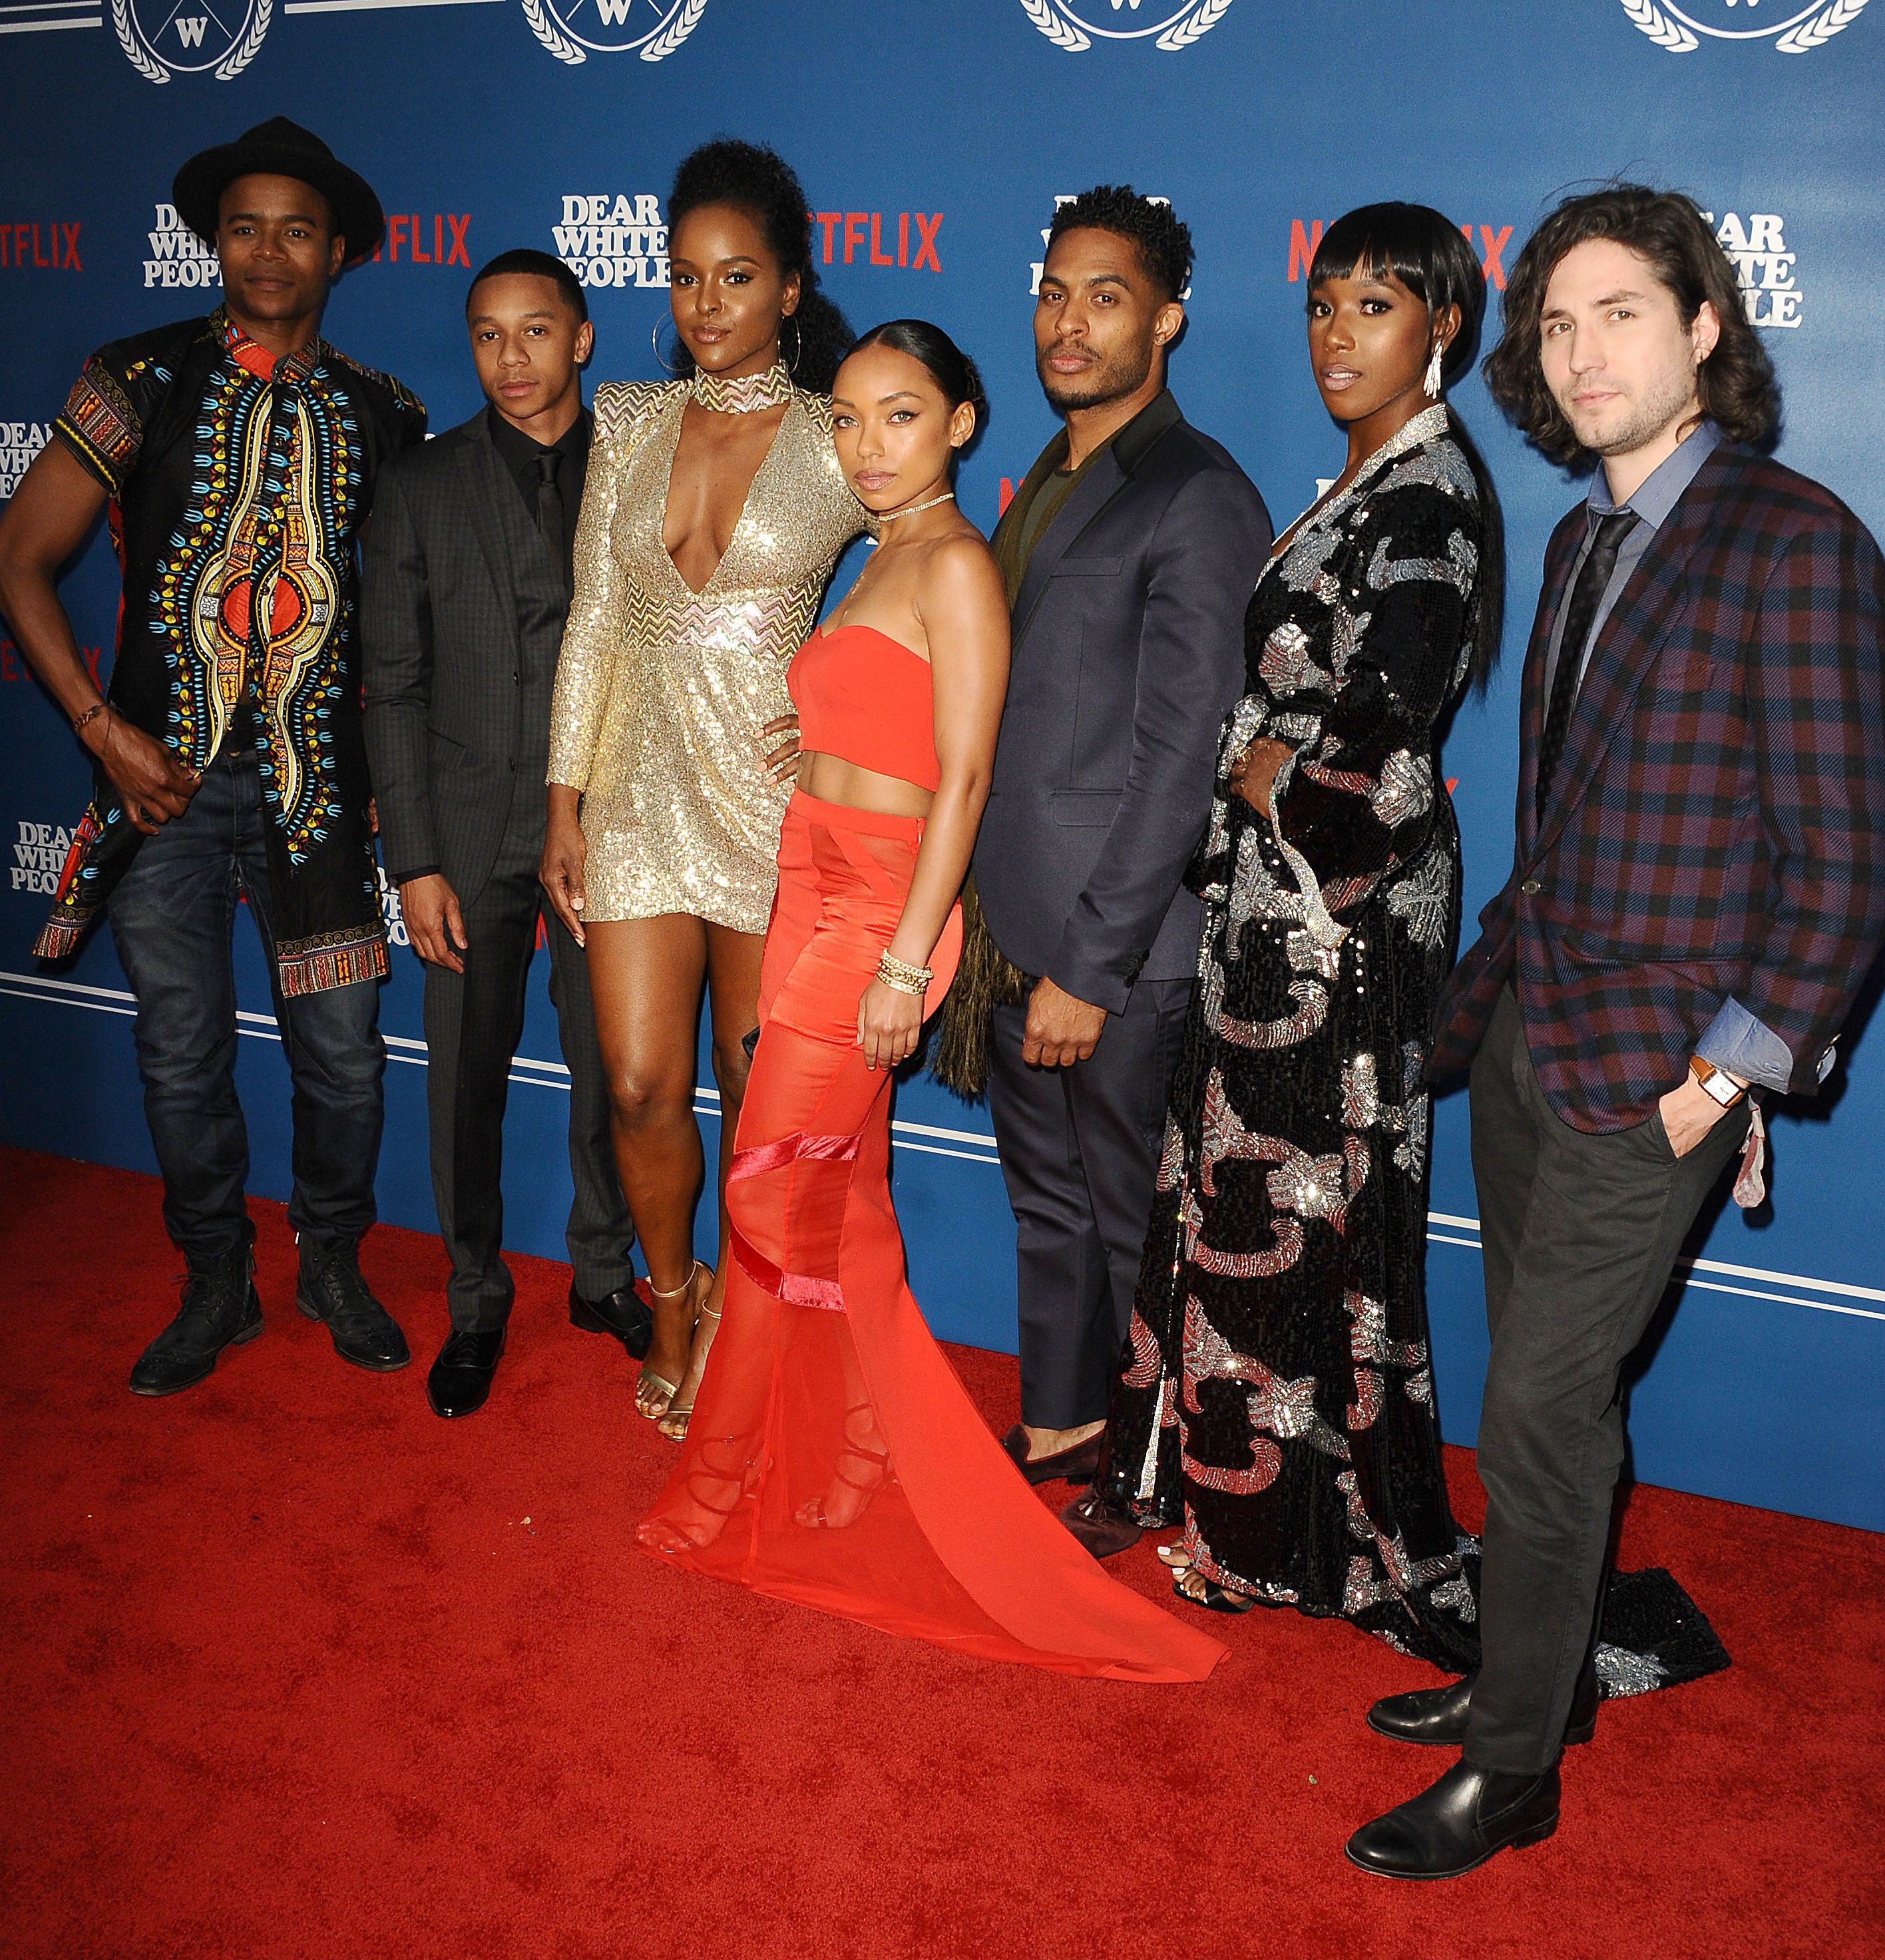 LOS ANGELES, CA - APRIL 27:  (L-R) Actors Marque Richardson, DeRon Horton, Antoinette Robertson, Logan Browning, Brandon P Bell, Ashley Blaine Featherson, and John Patrick Amedori attend the premiere of 'Dear White People' at Downtown Independent on April 27, 2017 in Los Angeles, California.  (Photo by Jason LaVeris/FilmMagic)